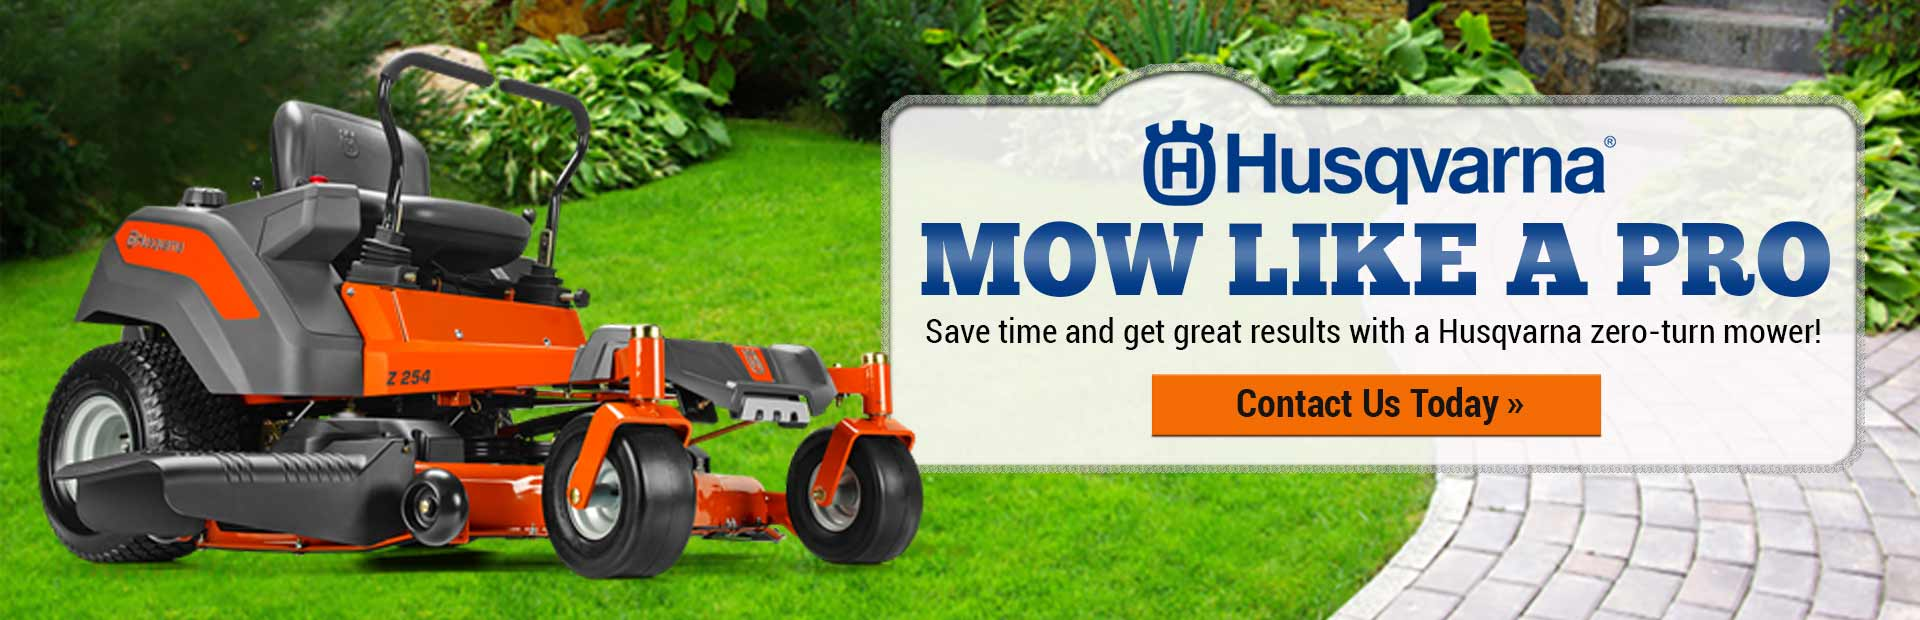 Mow like a pro! Save time and get great results with a Husqvarna zero-turn mower. Click here to browse online.